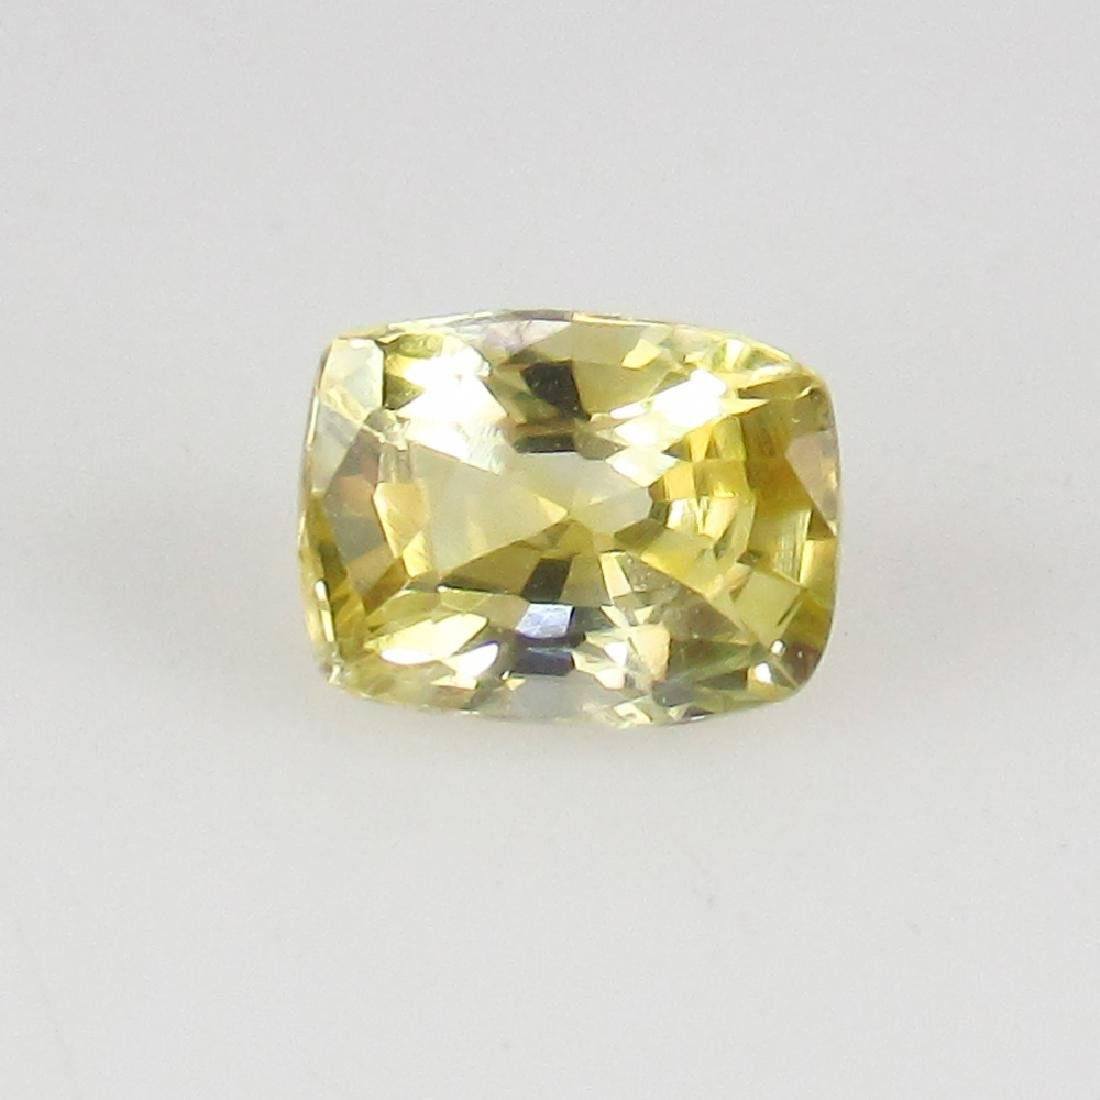 0.64 Ct Genuine IGI Certified Sri Lanka Yellow Sapphire